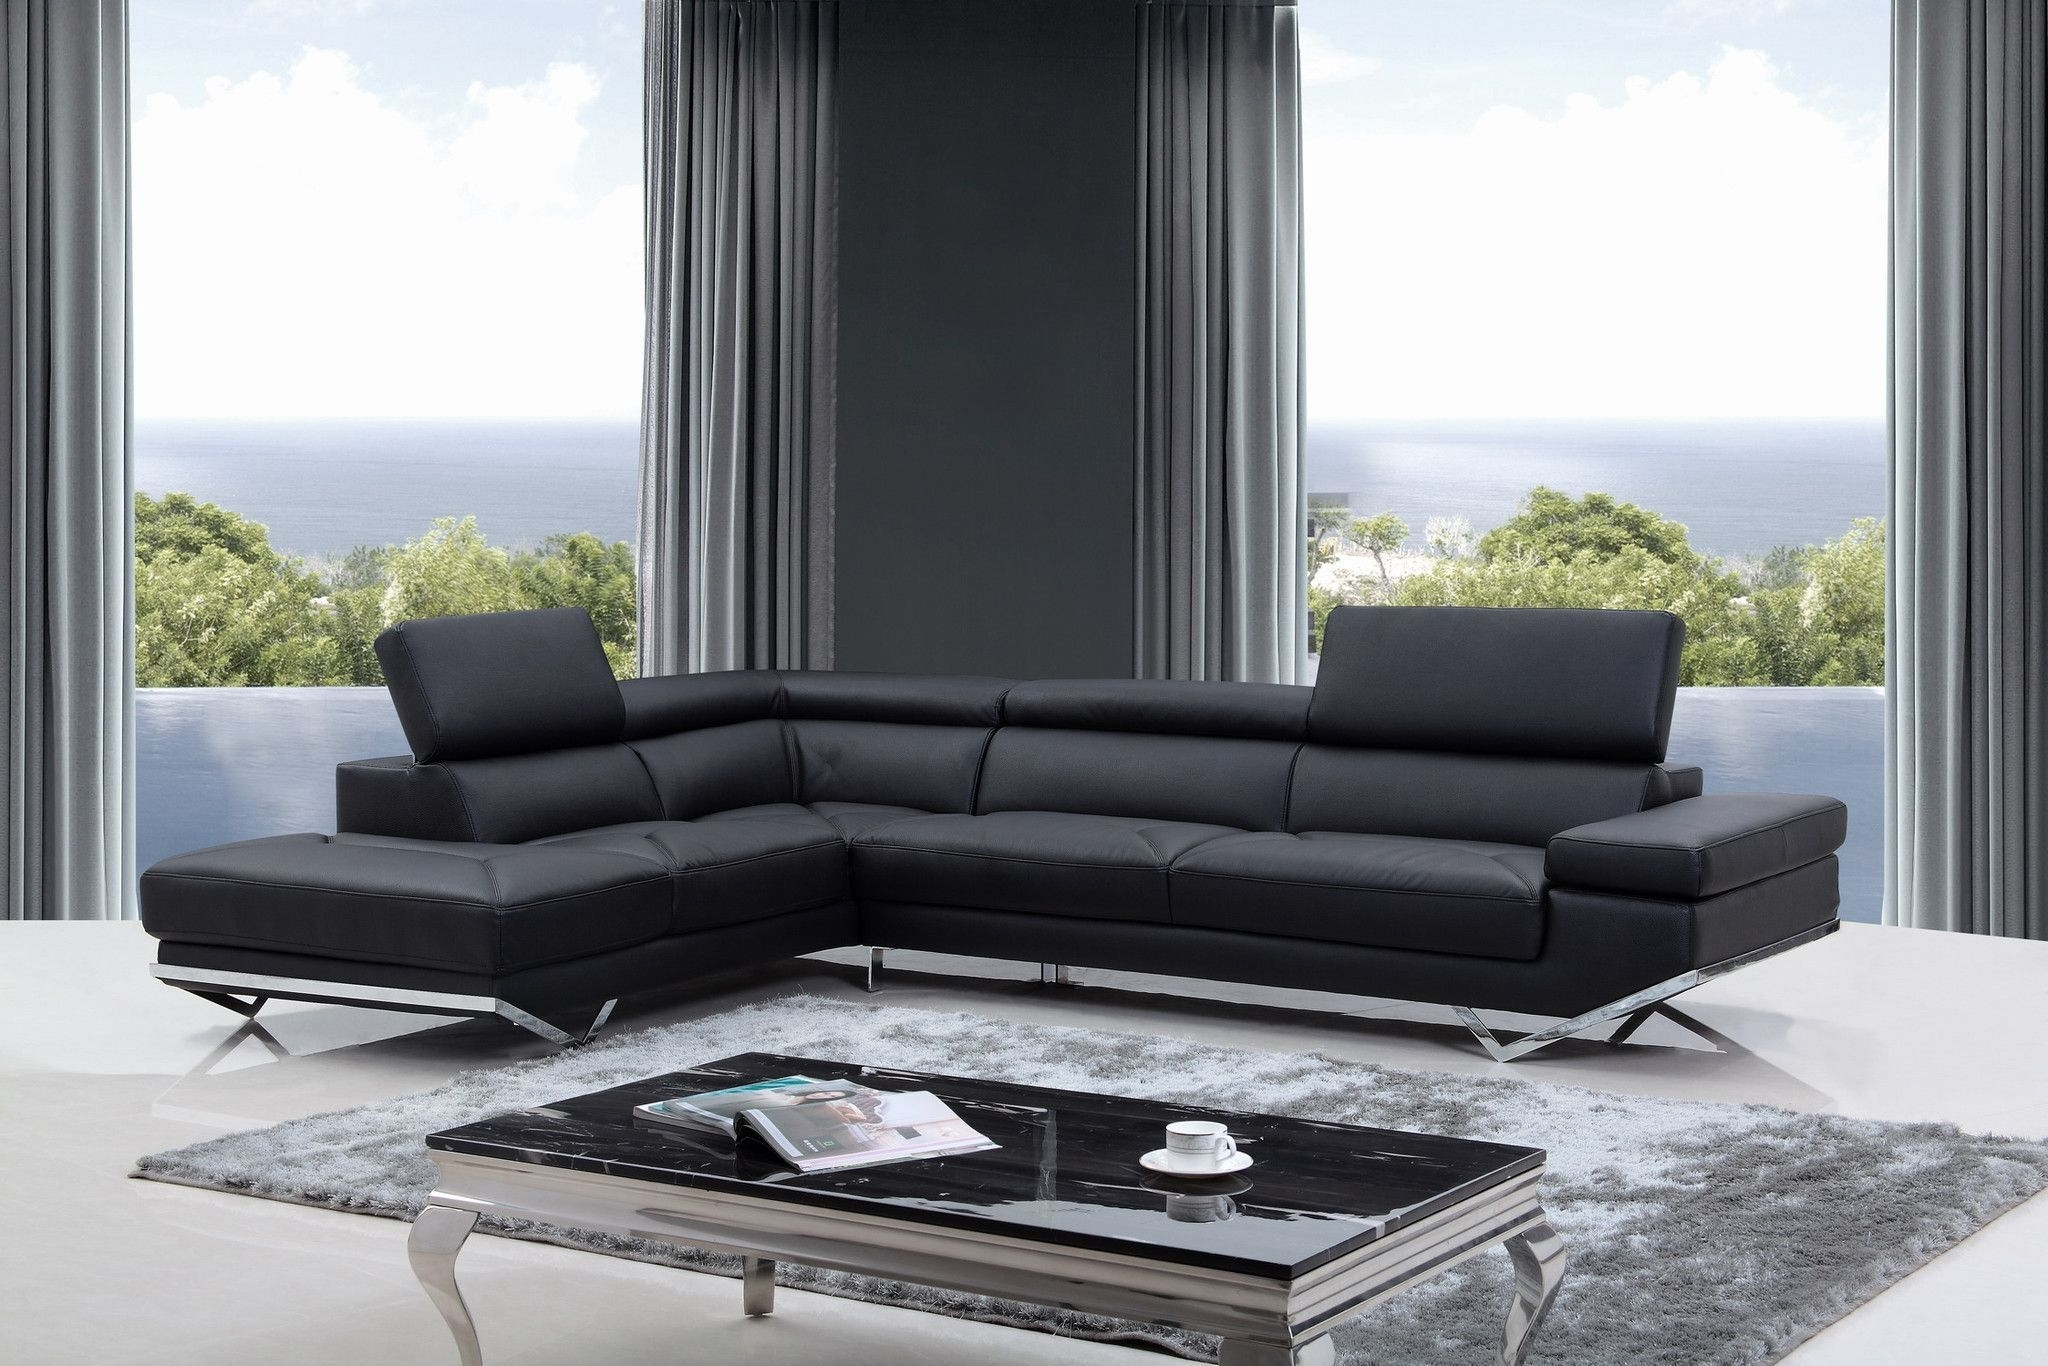 Divani Casa Quebec Modern Black Eco Leather Sectional Sofa (View 3 of 15)